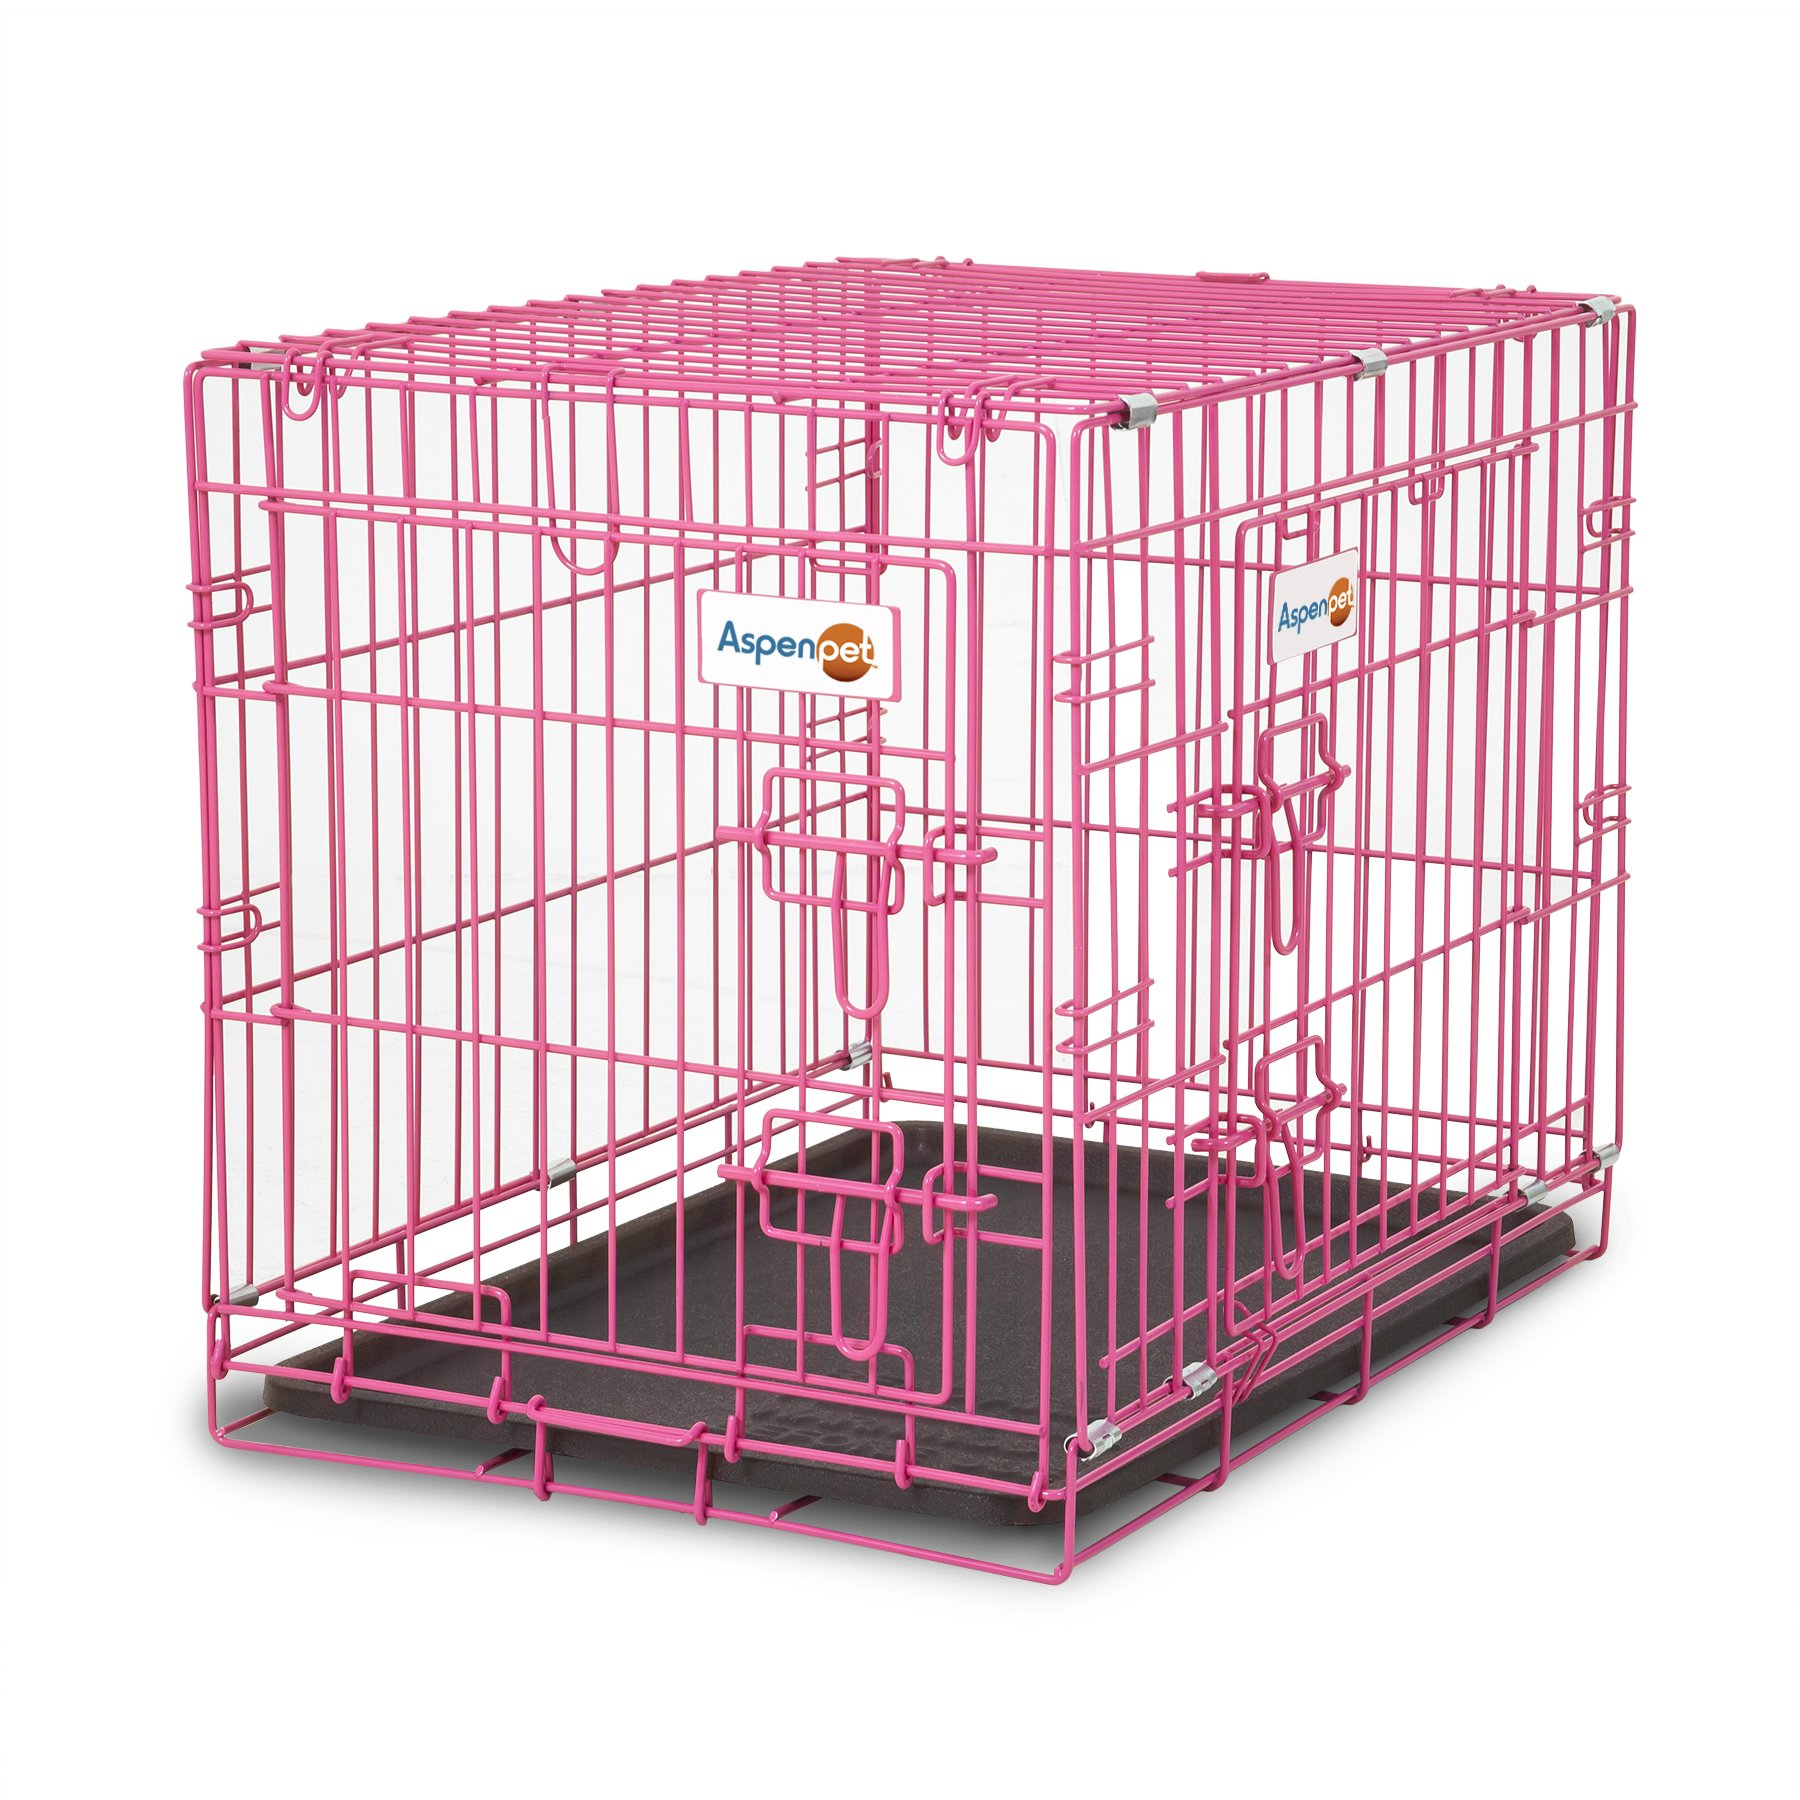 Aspen Pet Puppy 2-Door Training Retreat Crate, 24'', Pink